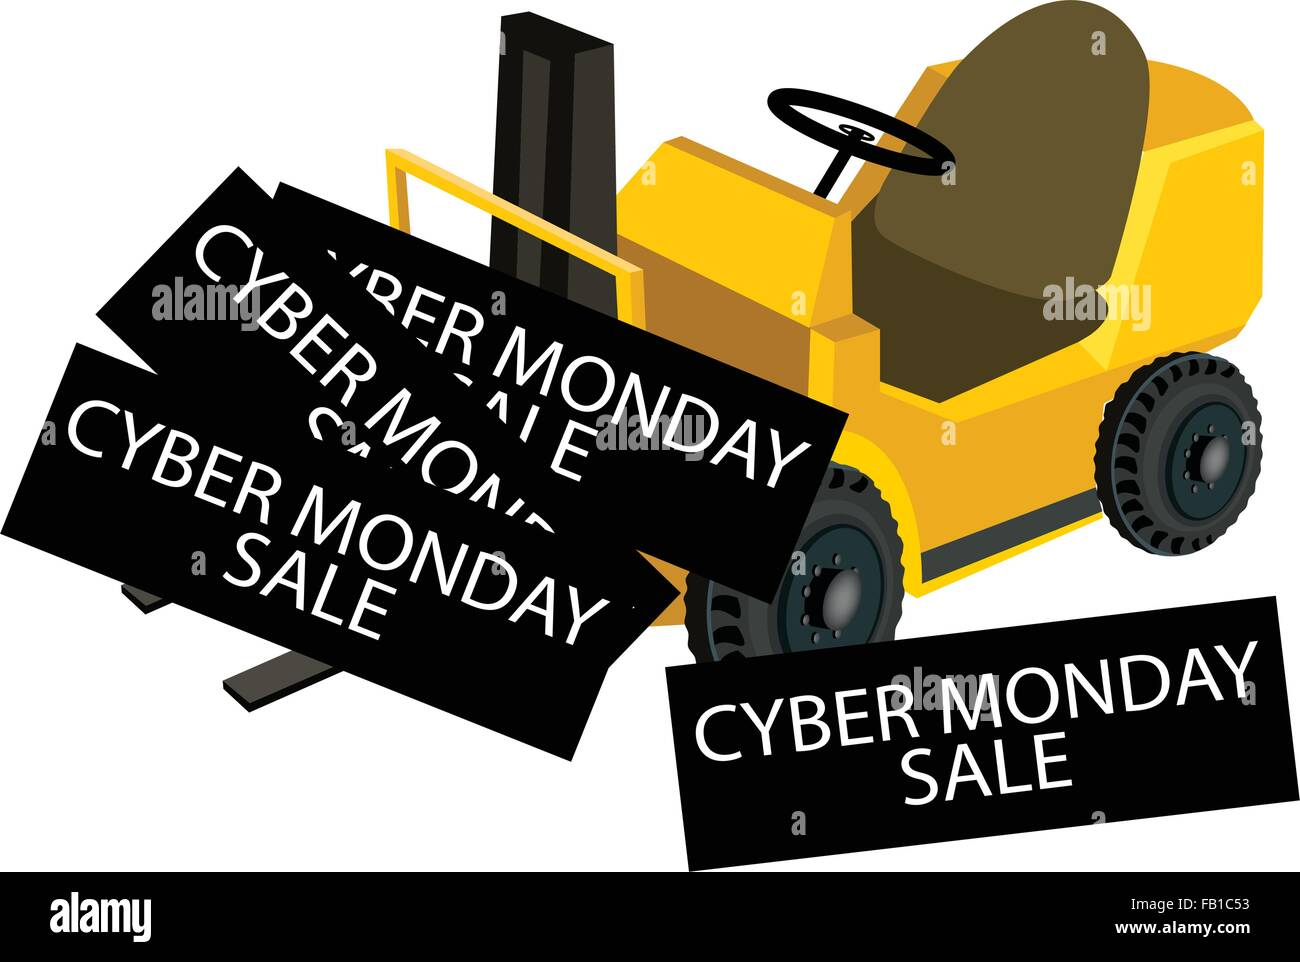 Powered Industrial Forklift Loading Cyber Monday Deal Card for ...